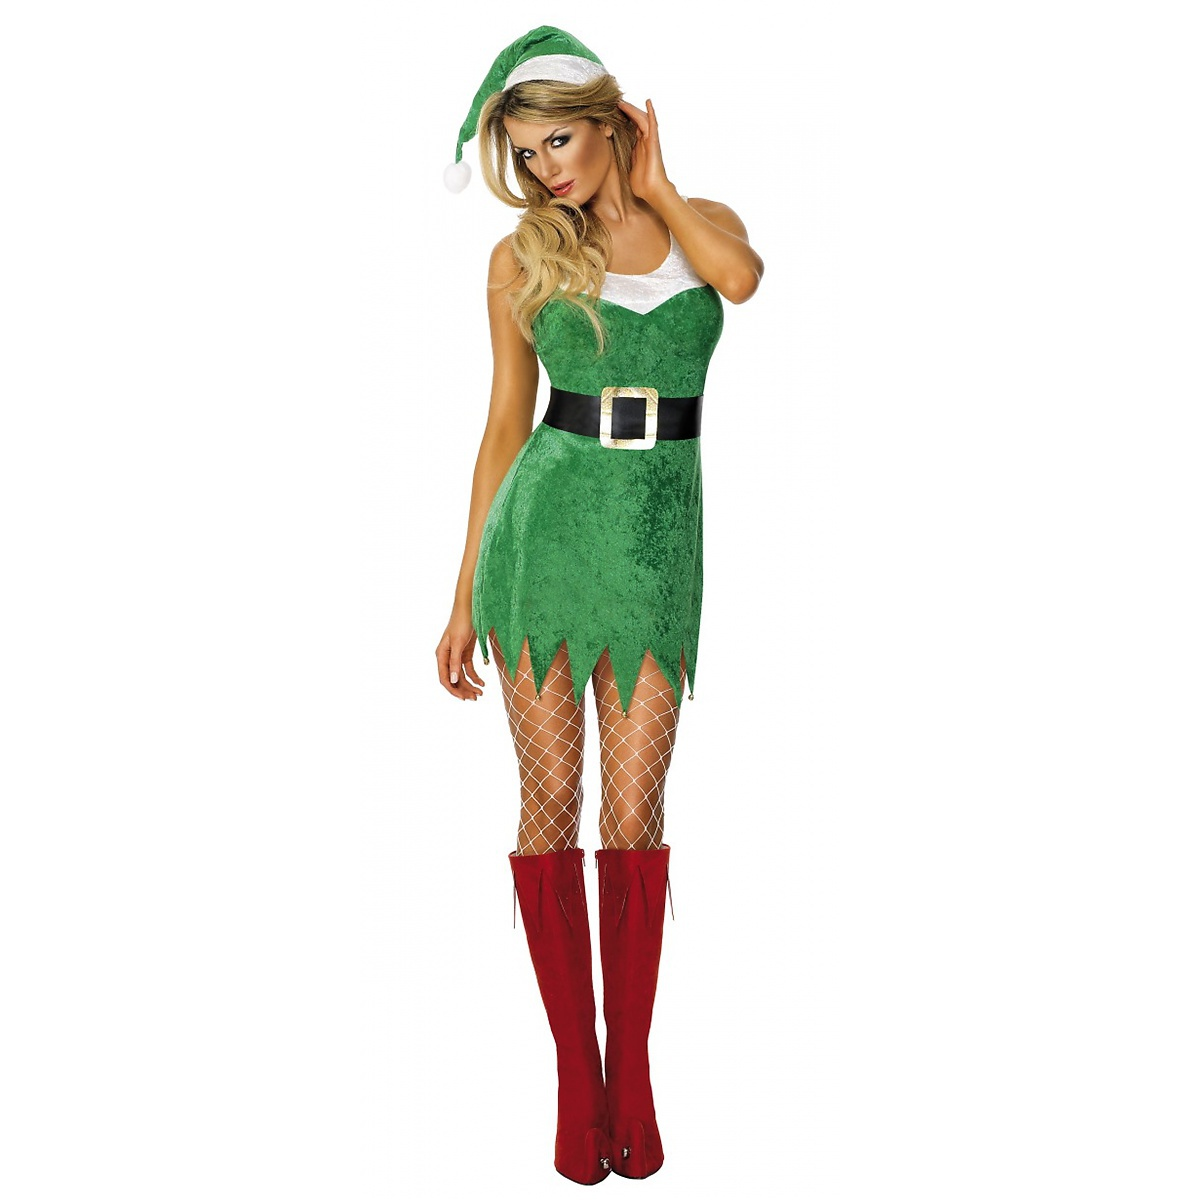 Smiffys Santa's Sexy Little Helper Claus Elf Adult Womens Fancy Dress Christmas Costume at Sears.com